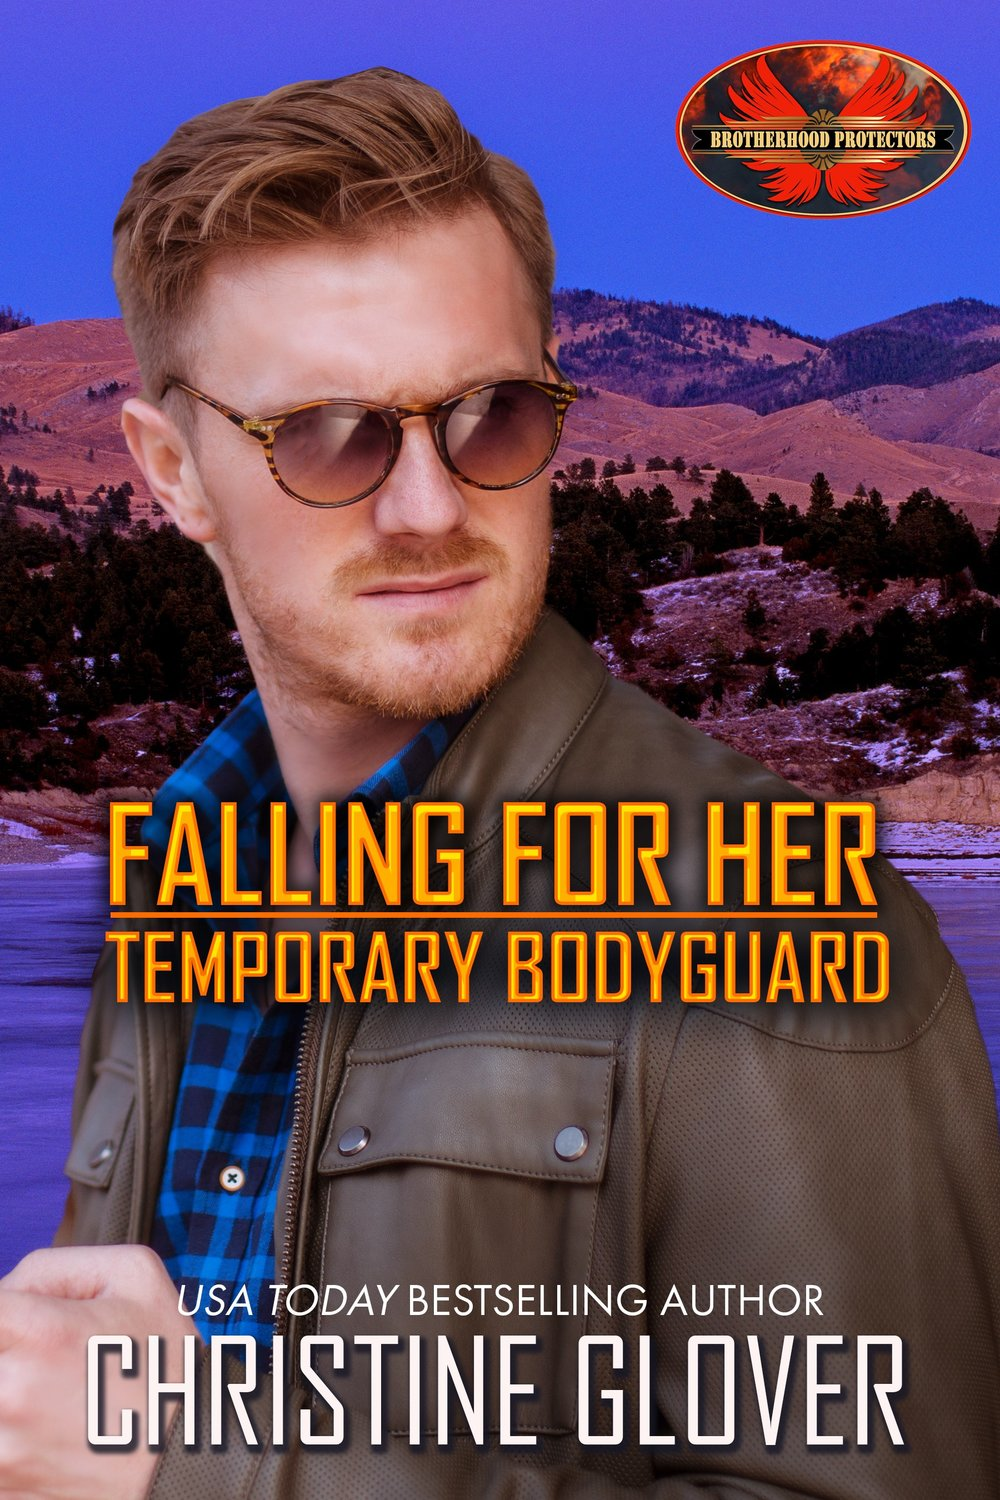 Falling_For_Her_Temporary_Bodyguard_1800x2700.jpg